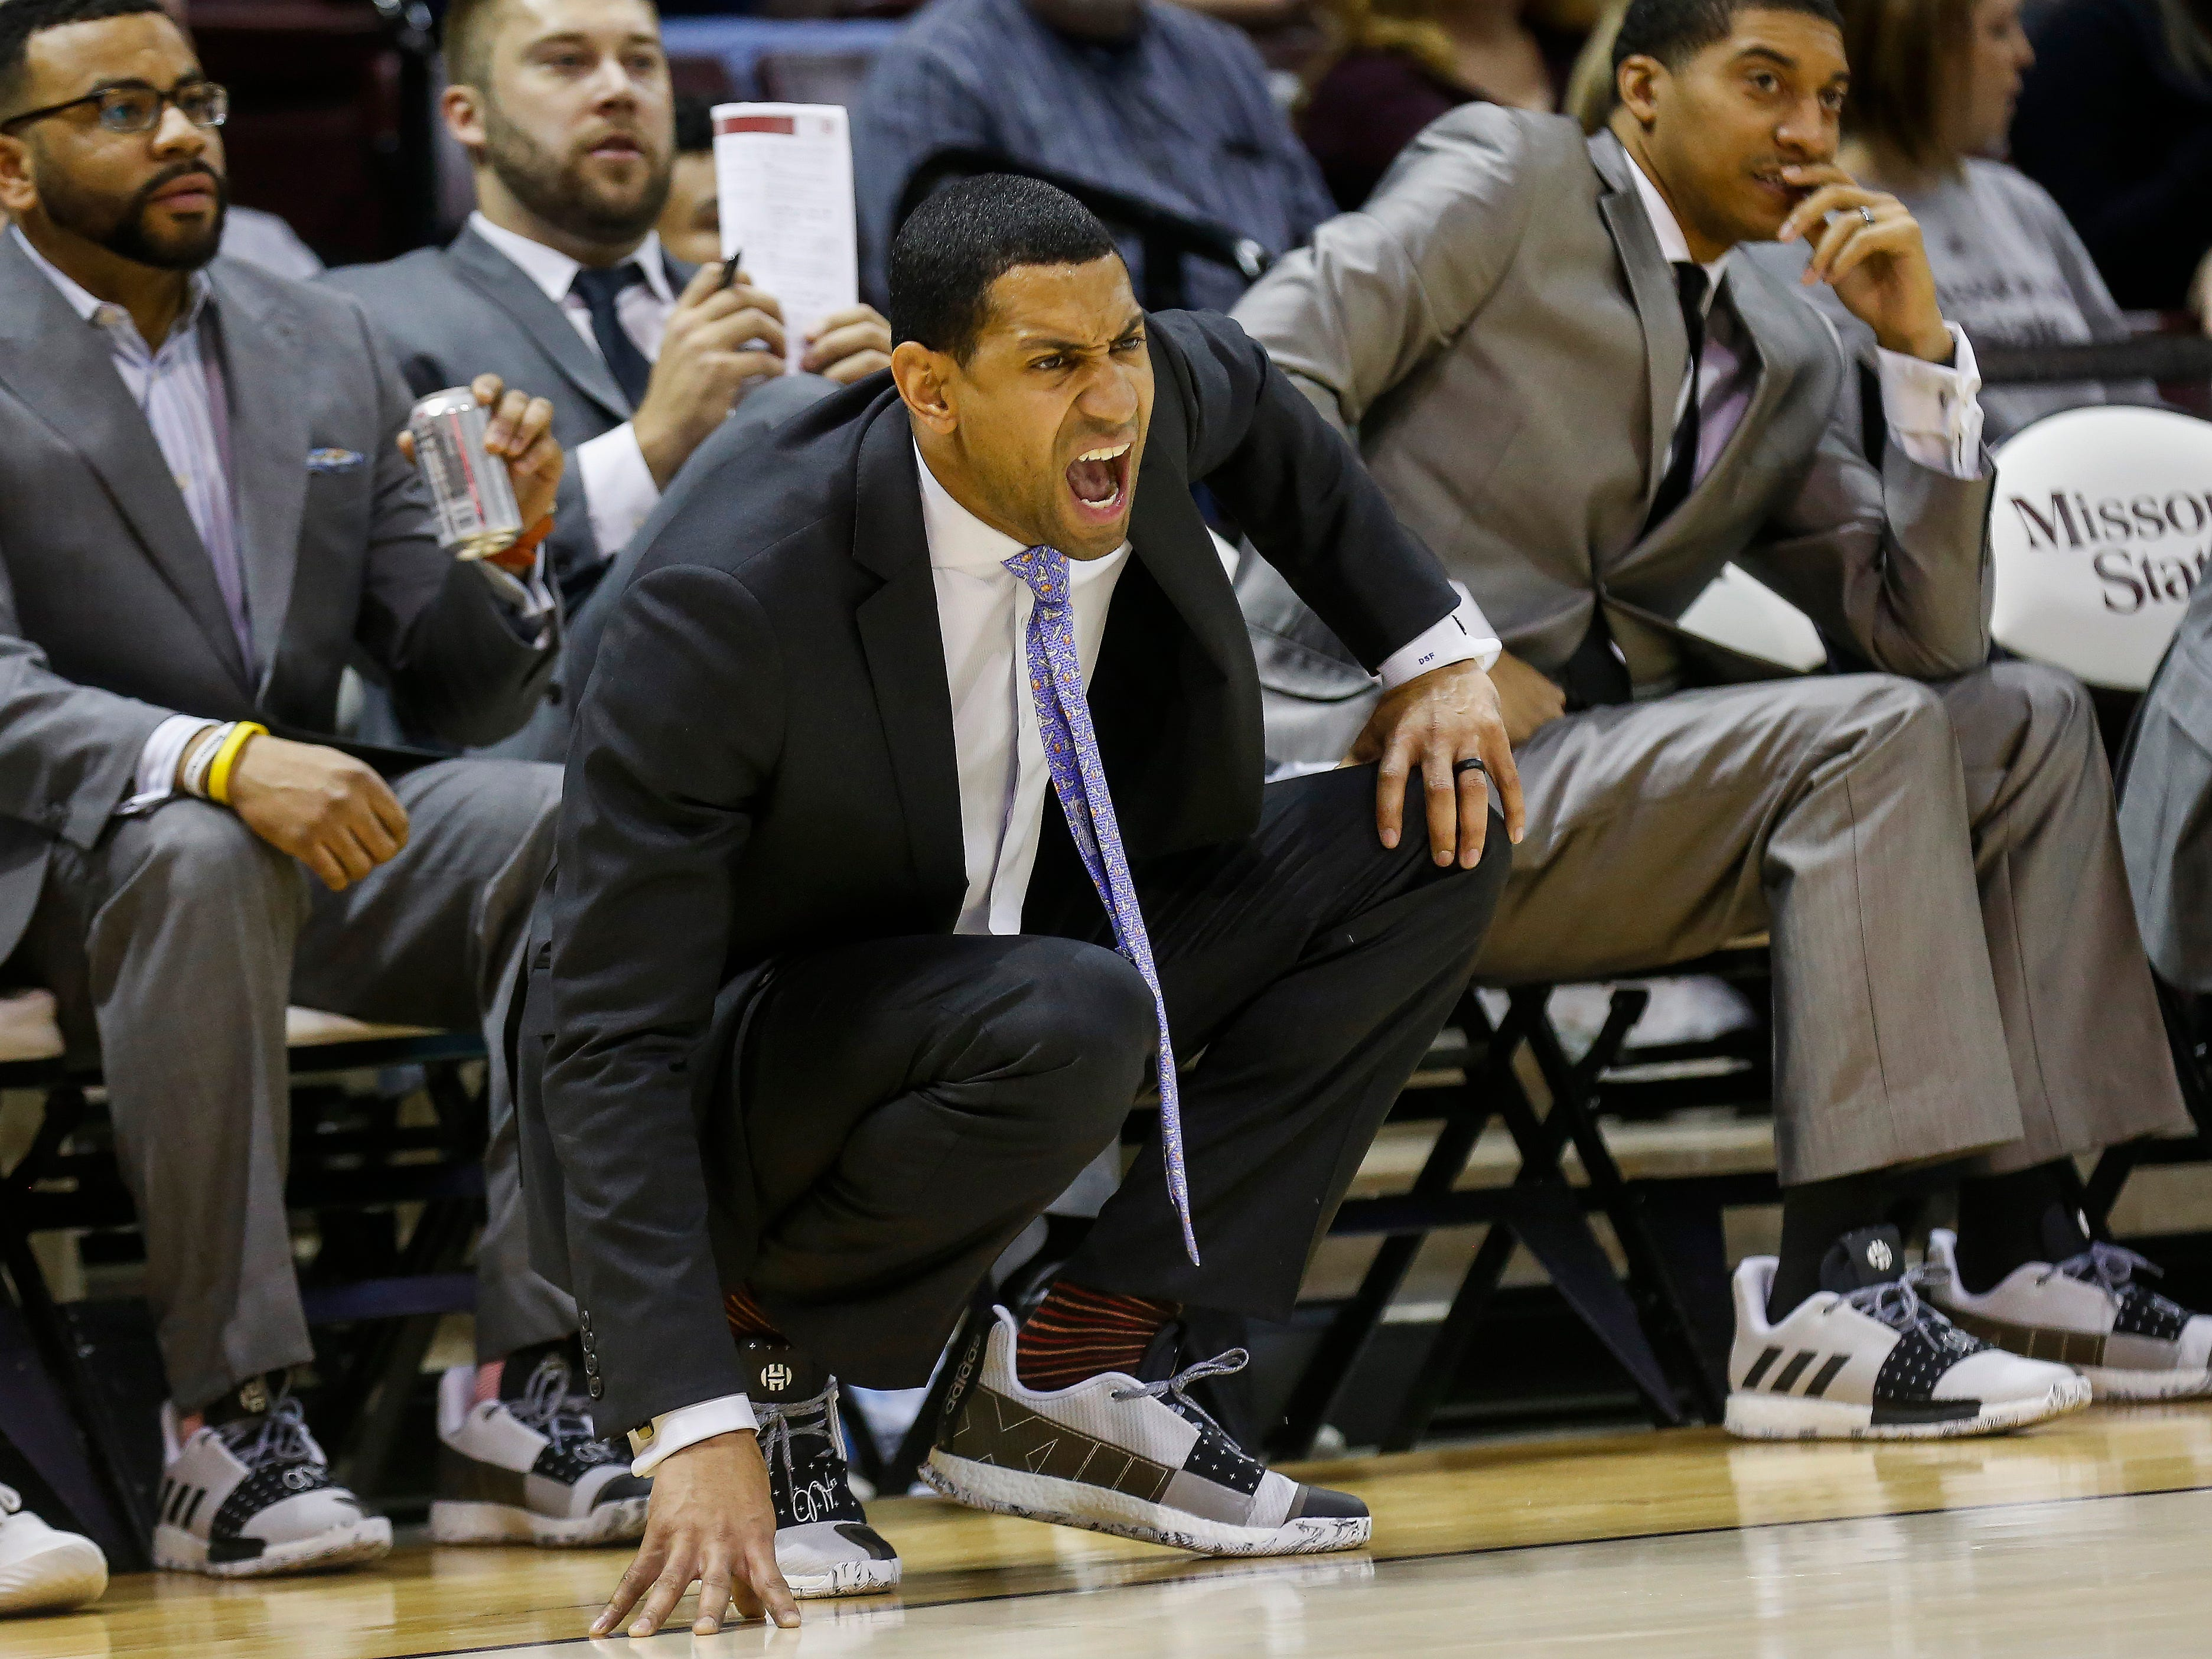 Missouri State head coach Dana Ford shouts out instructions during the Bears' game against Bradley at JQH Arena on Saturday, Jan. 26, 2019.